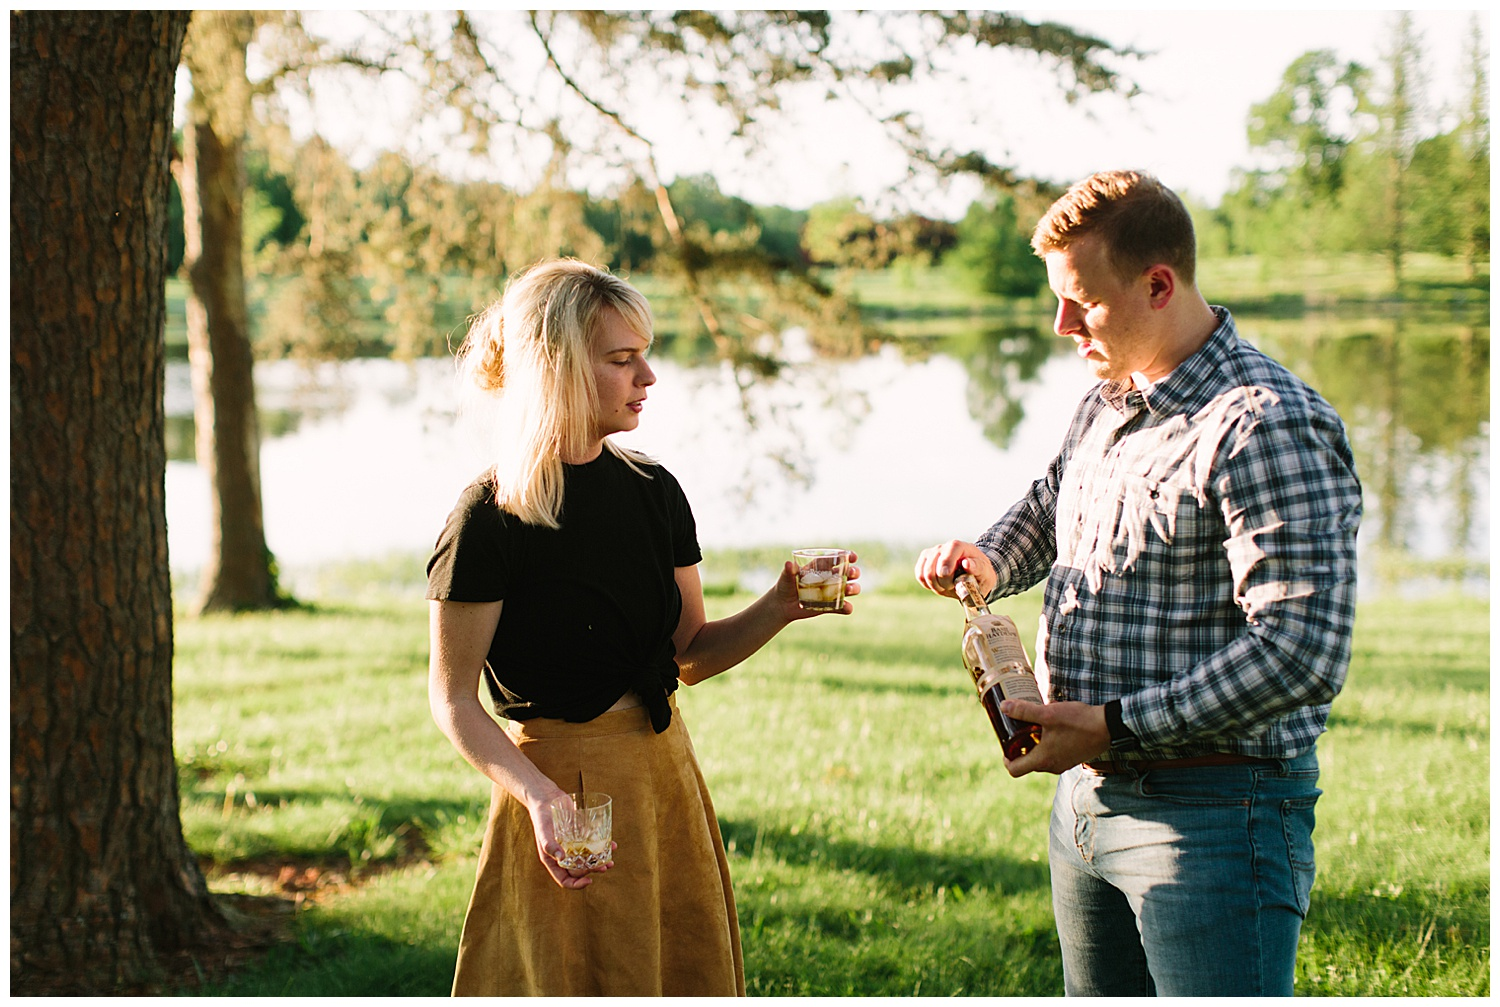 trent.and.kendra.photography.bernheim.forest.photos-45.jpg